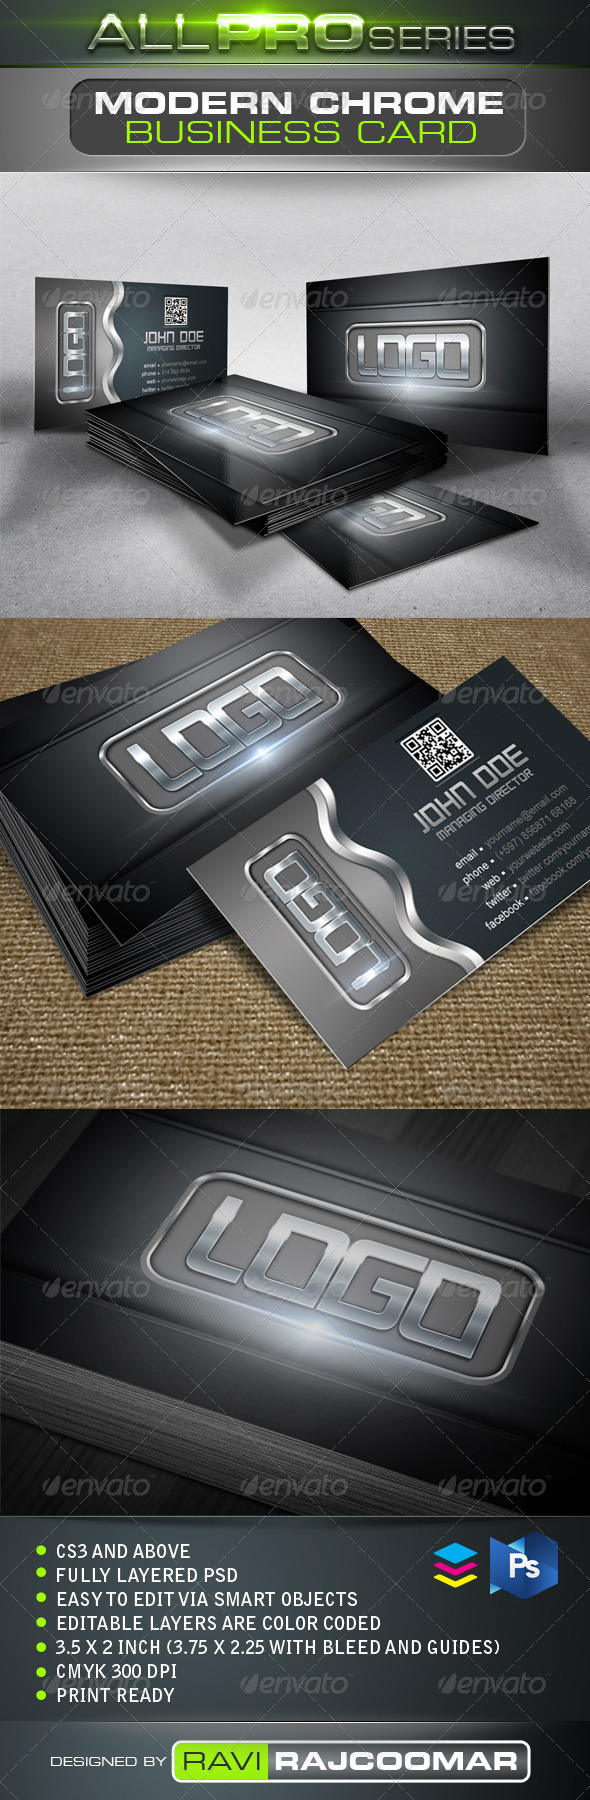 Modern Chrome Business Card - Business Cards Print Templates